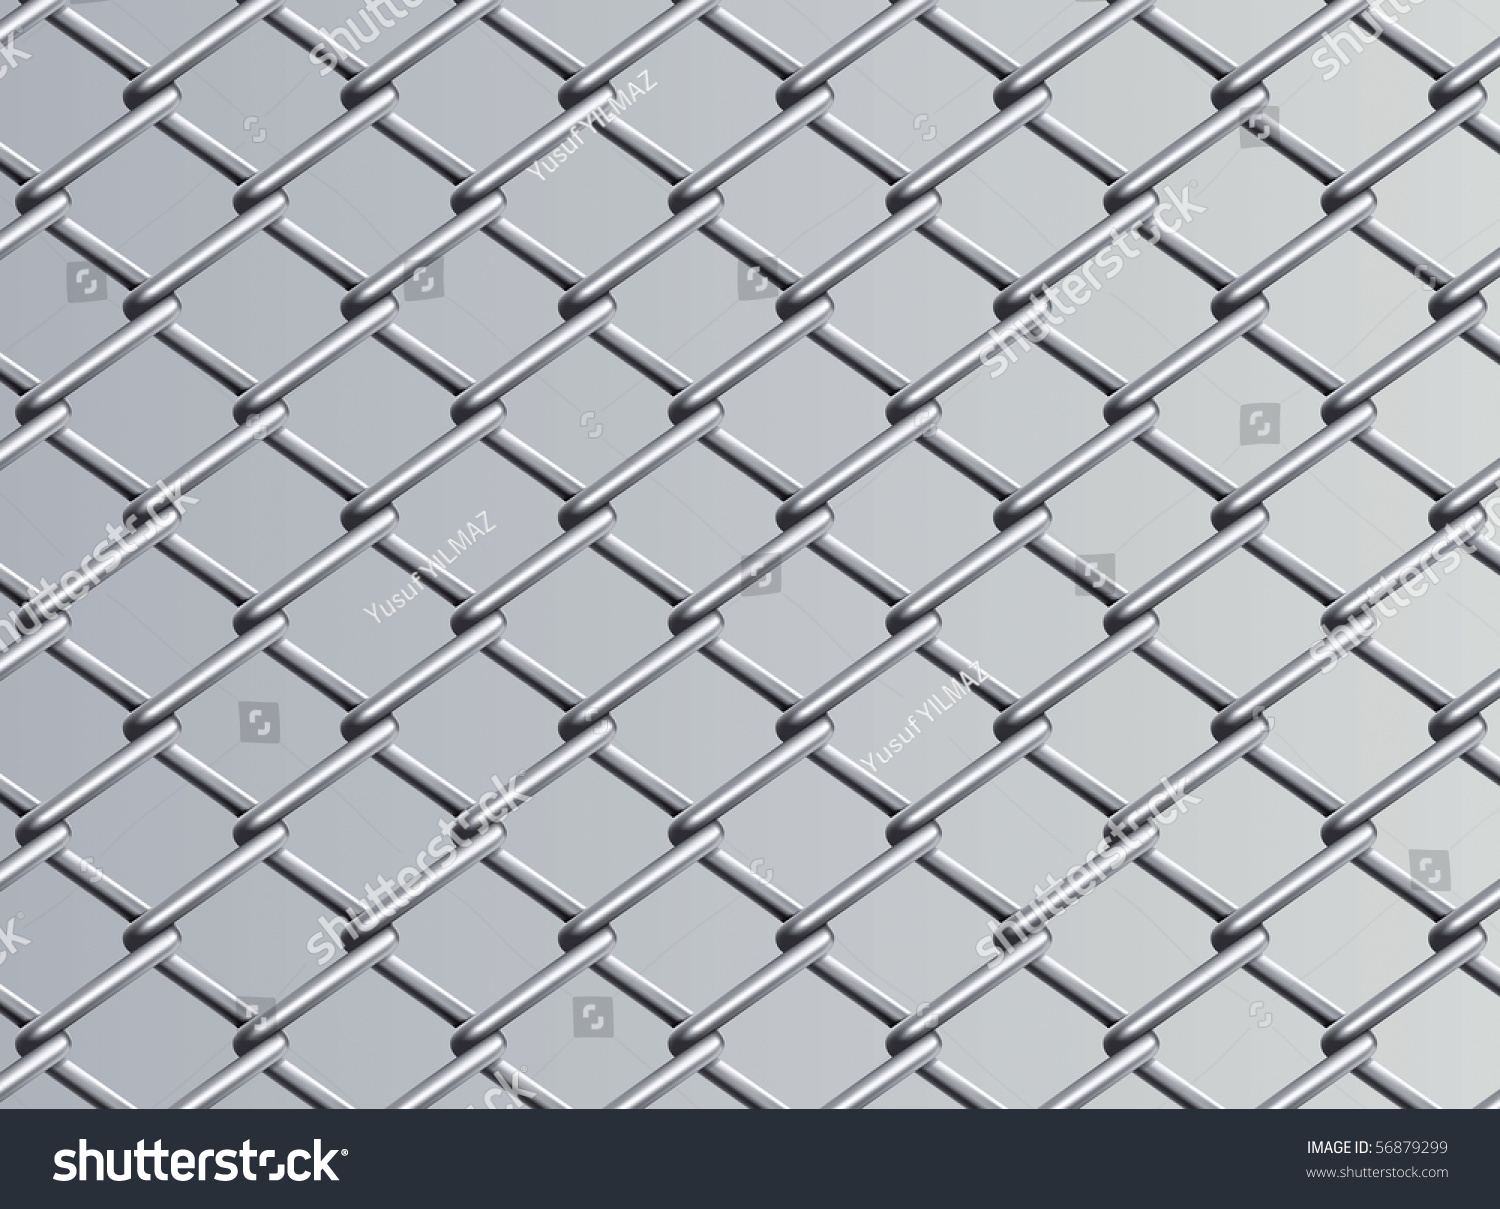 Chain Link Fence Drawing chain link fence set 1 vector stock vector 56879299 - shutterstock